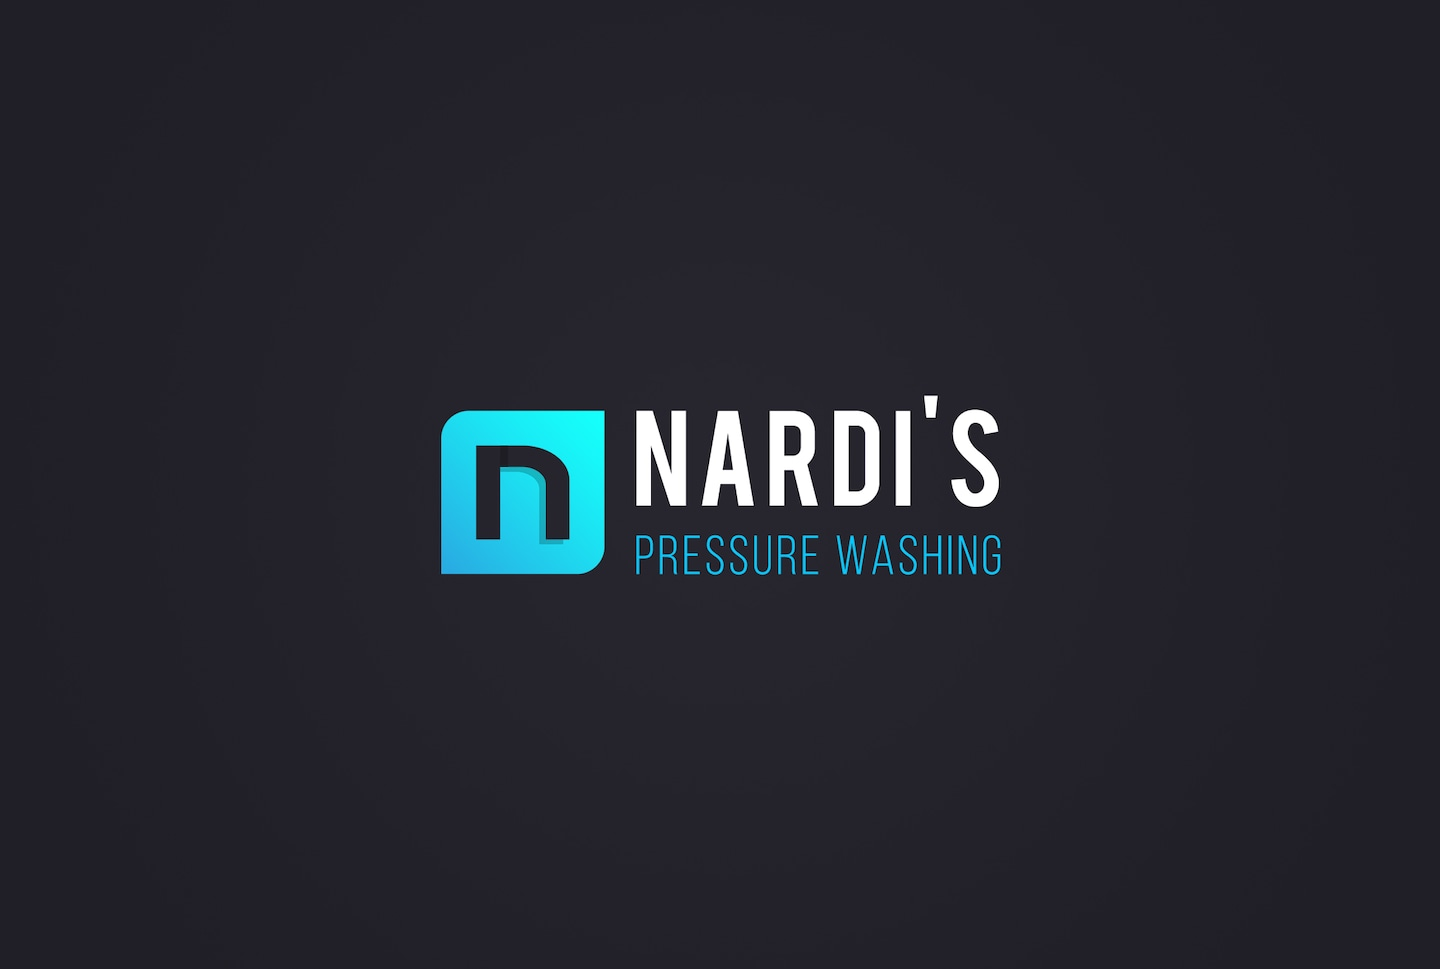 Nardi's Pressure Washing